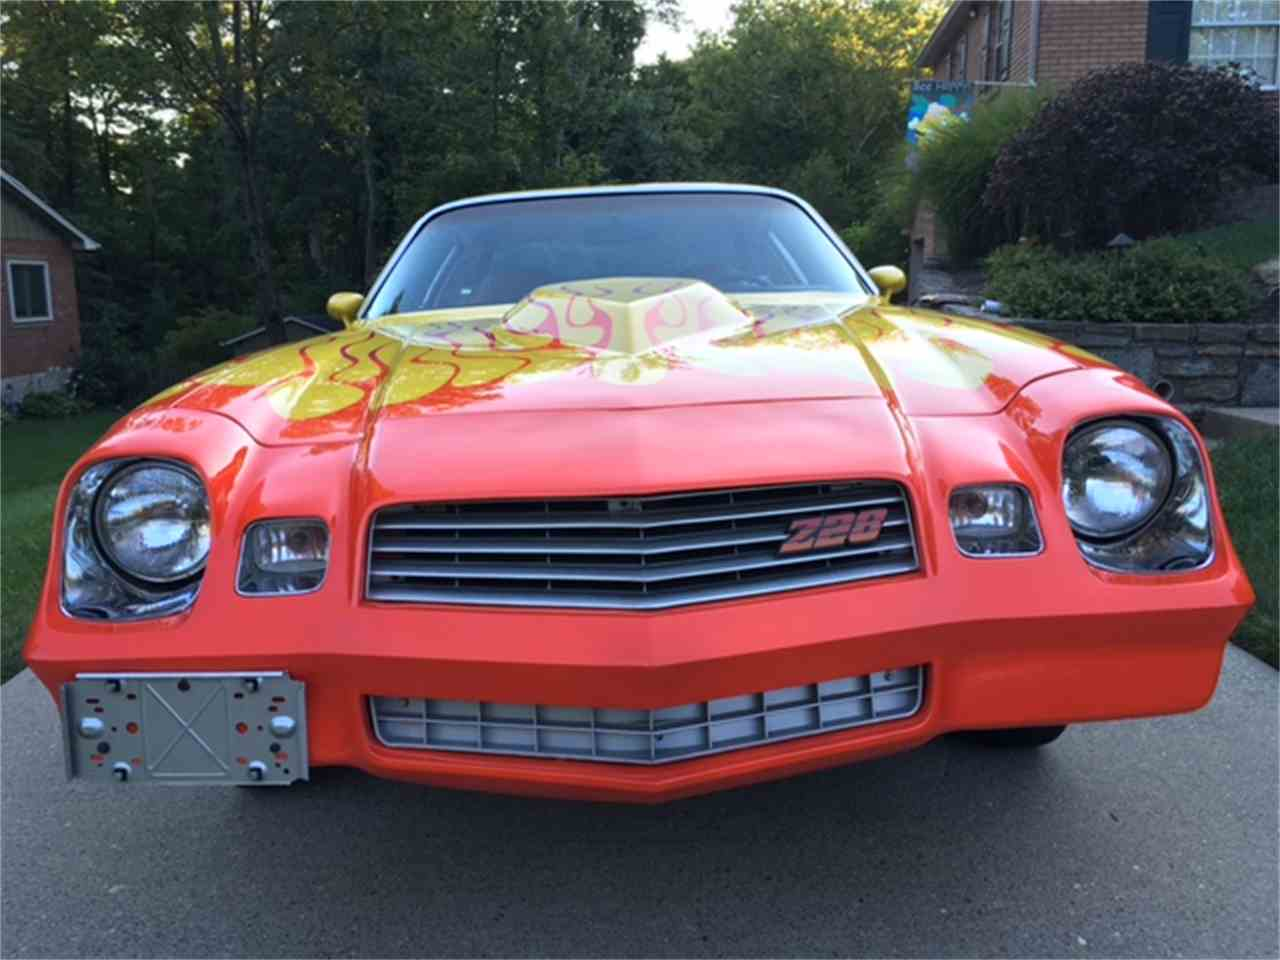 1981 Chevrolet Camaro For Sale Classiccars Com Cc 898882